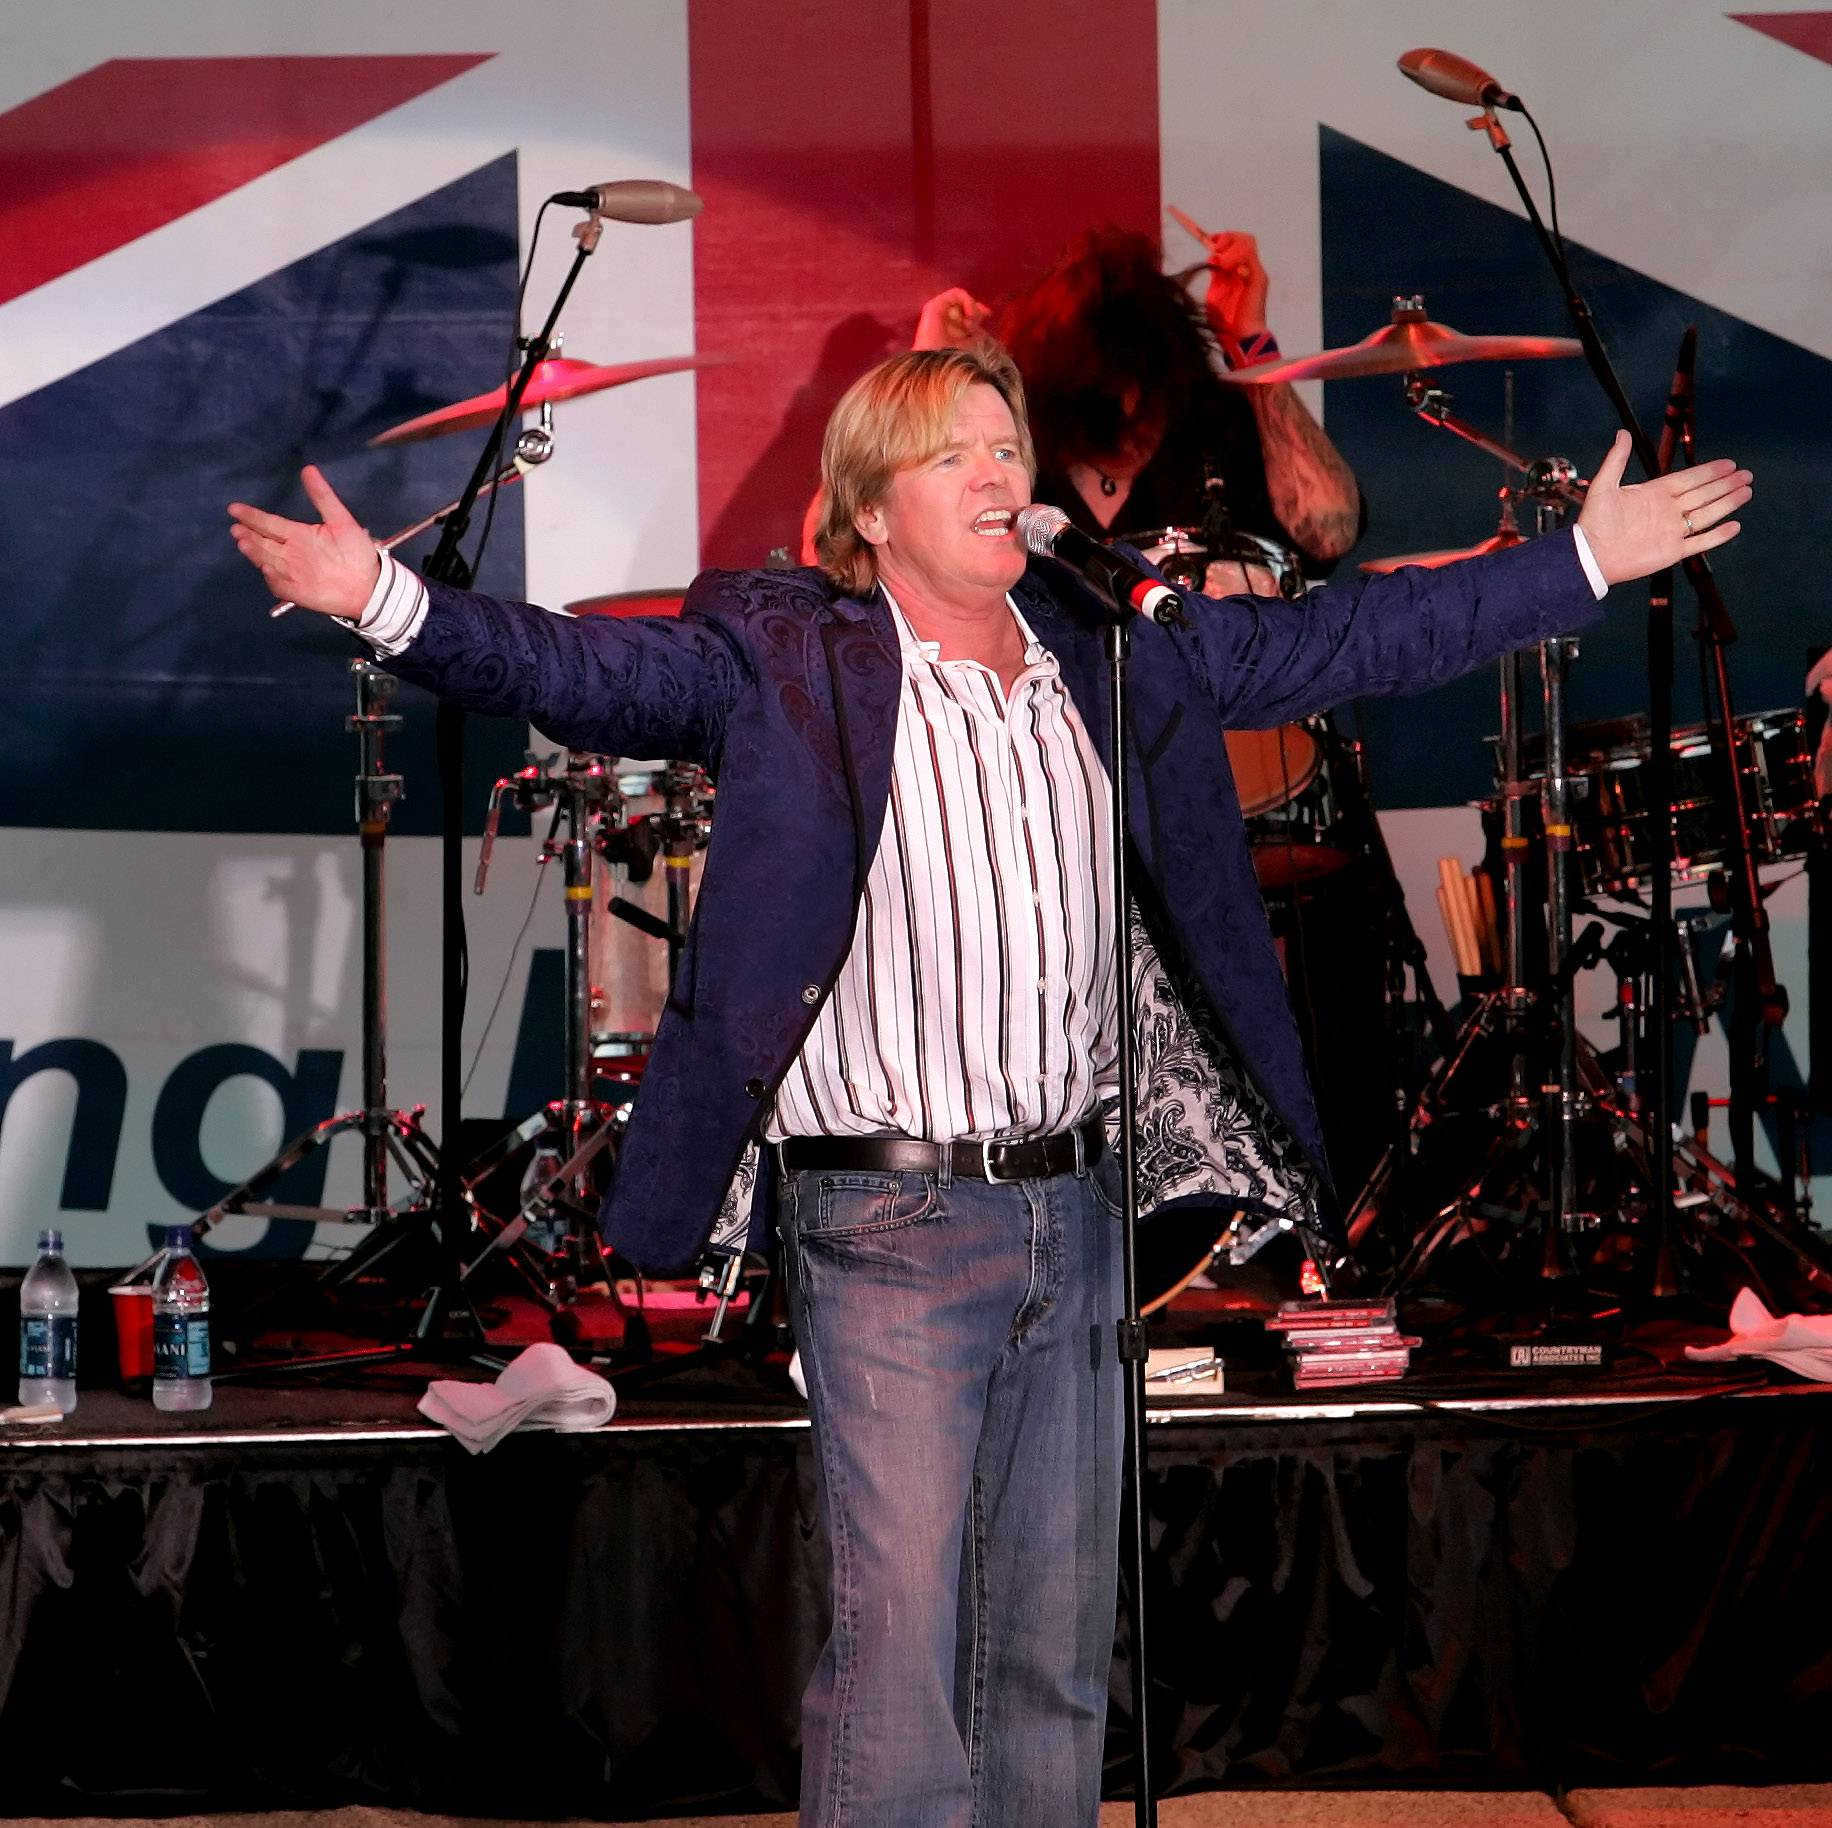 British invasion band Herman's Hermits starring Peter Noone performs at the Genesee Theatre in Waukegan at 7:30 p.m. Friday, Feb. 19.